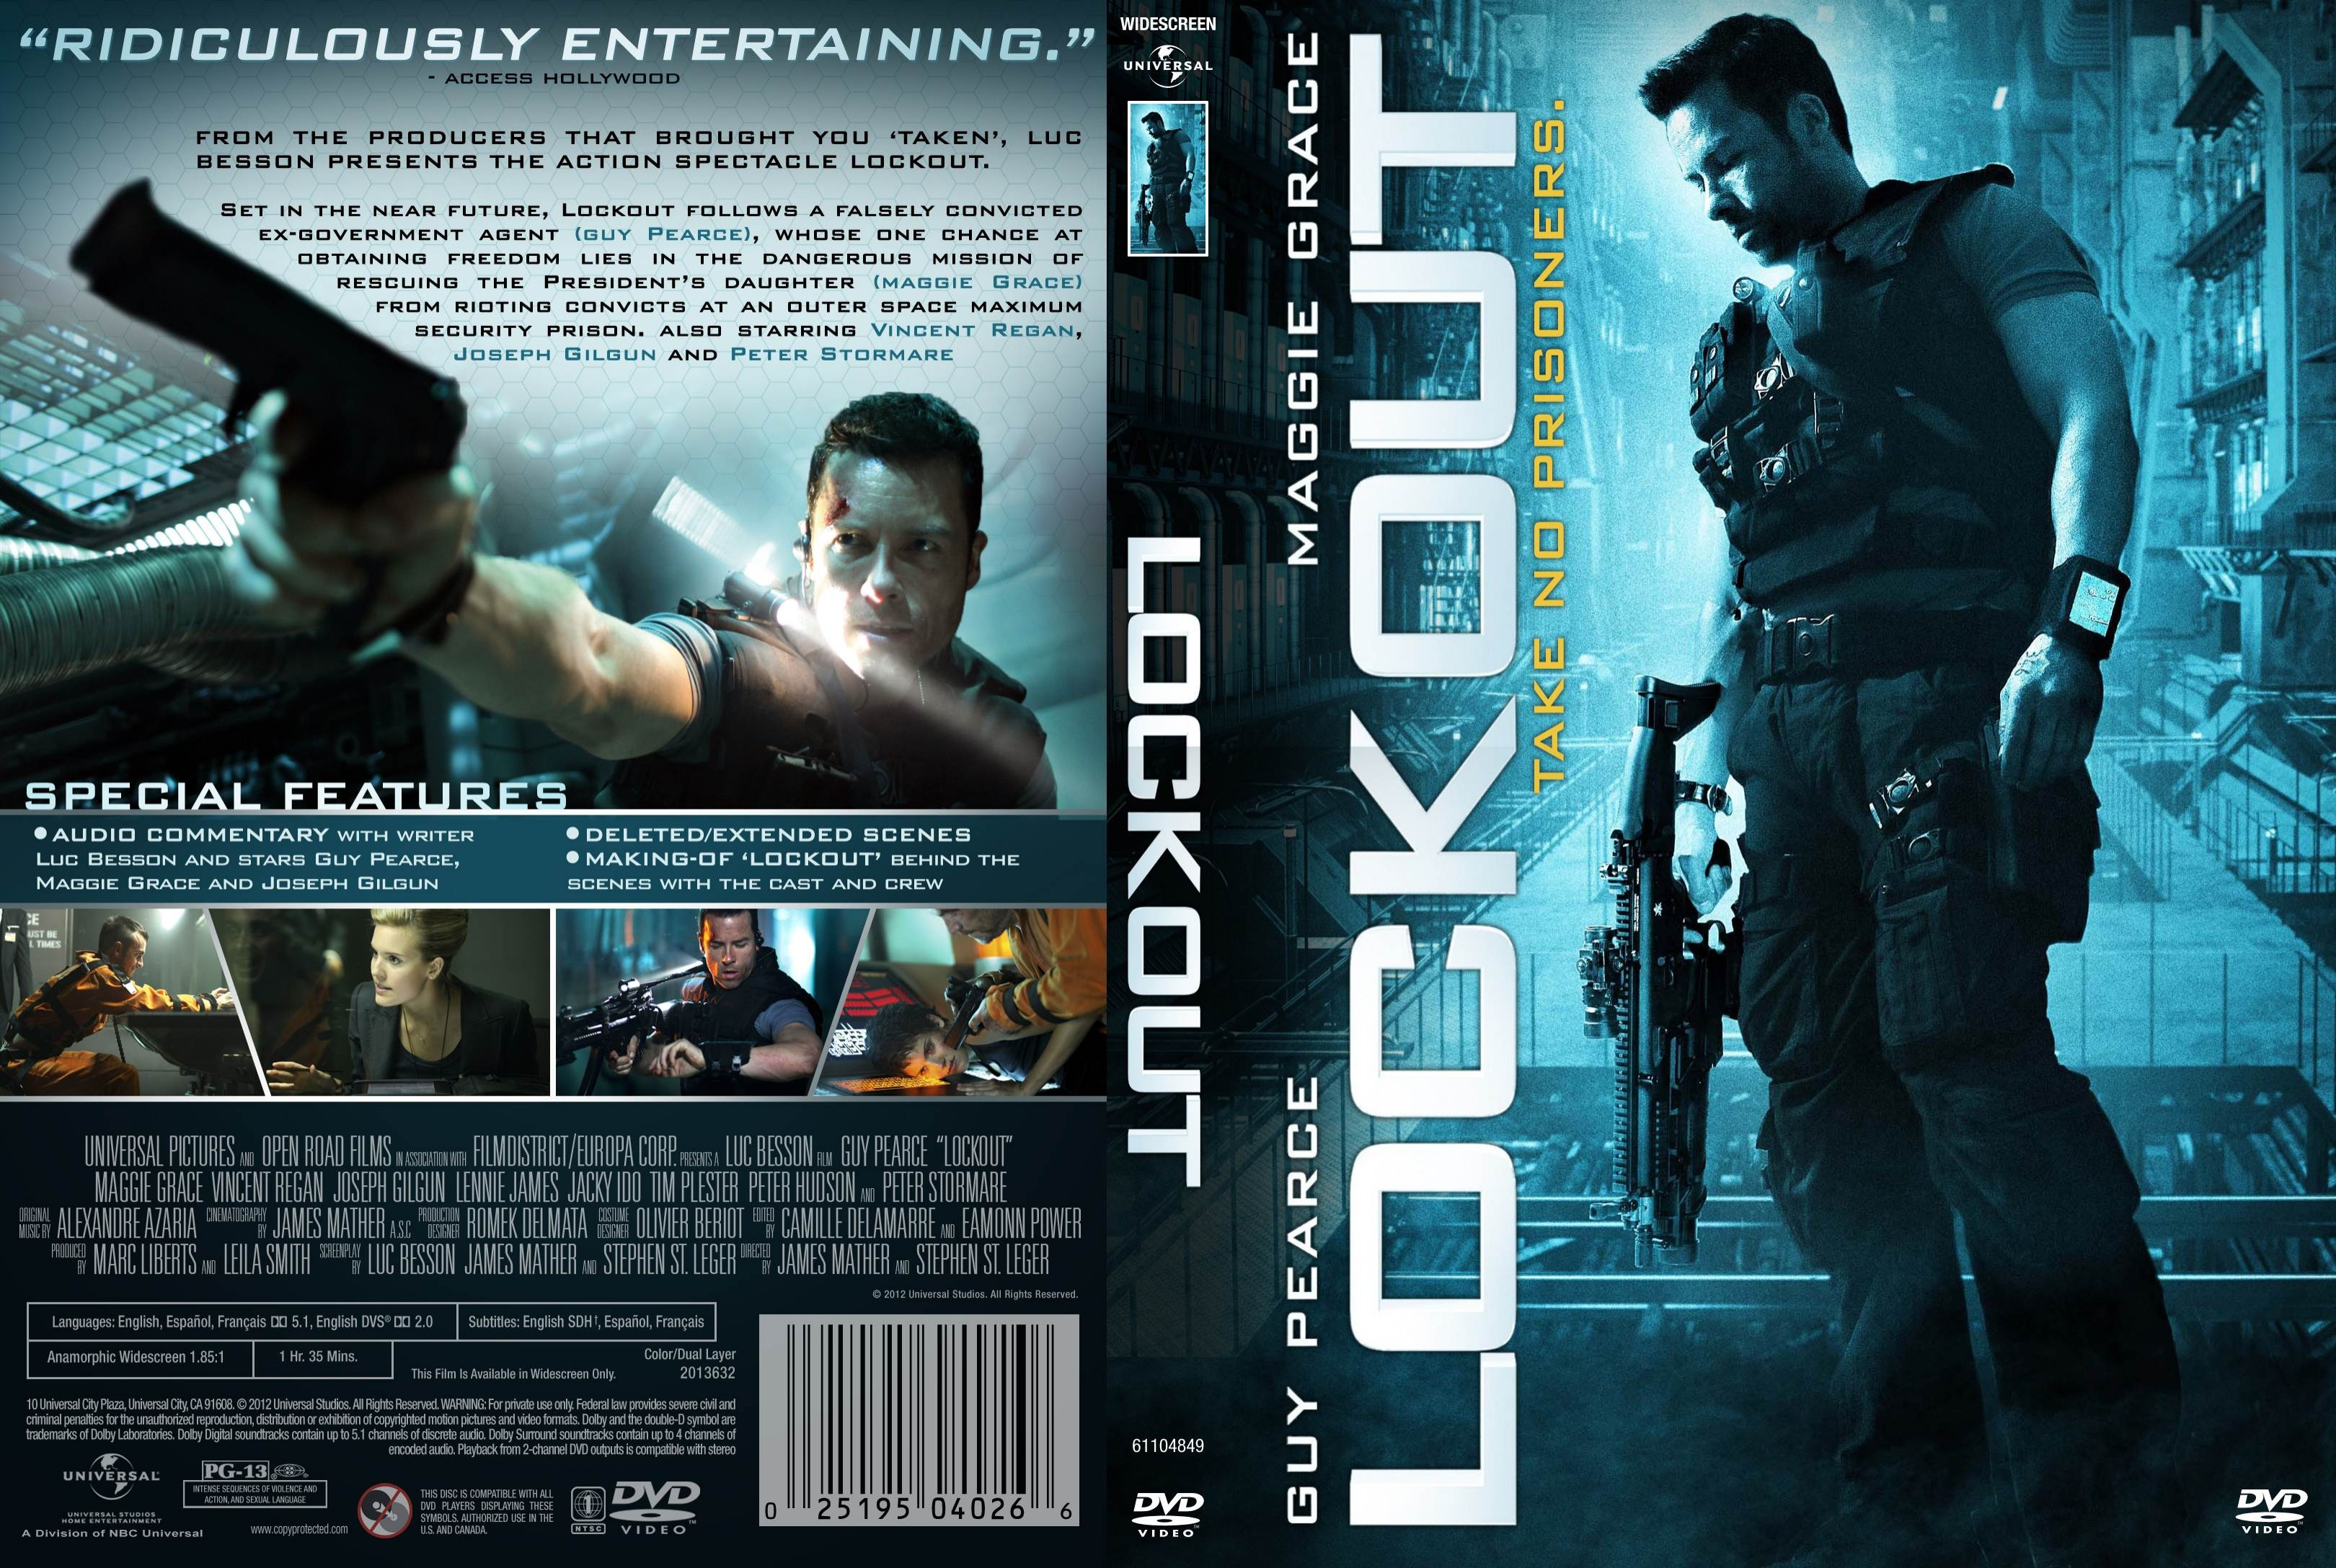 lockout movie cover image - Dark Force,Science Fiction,Fan ...